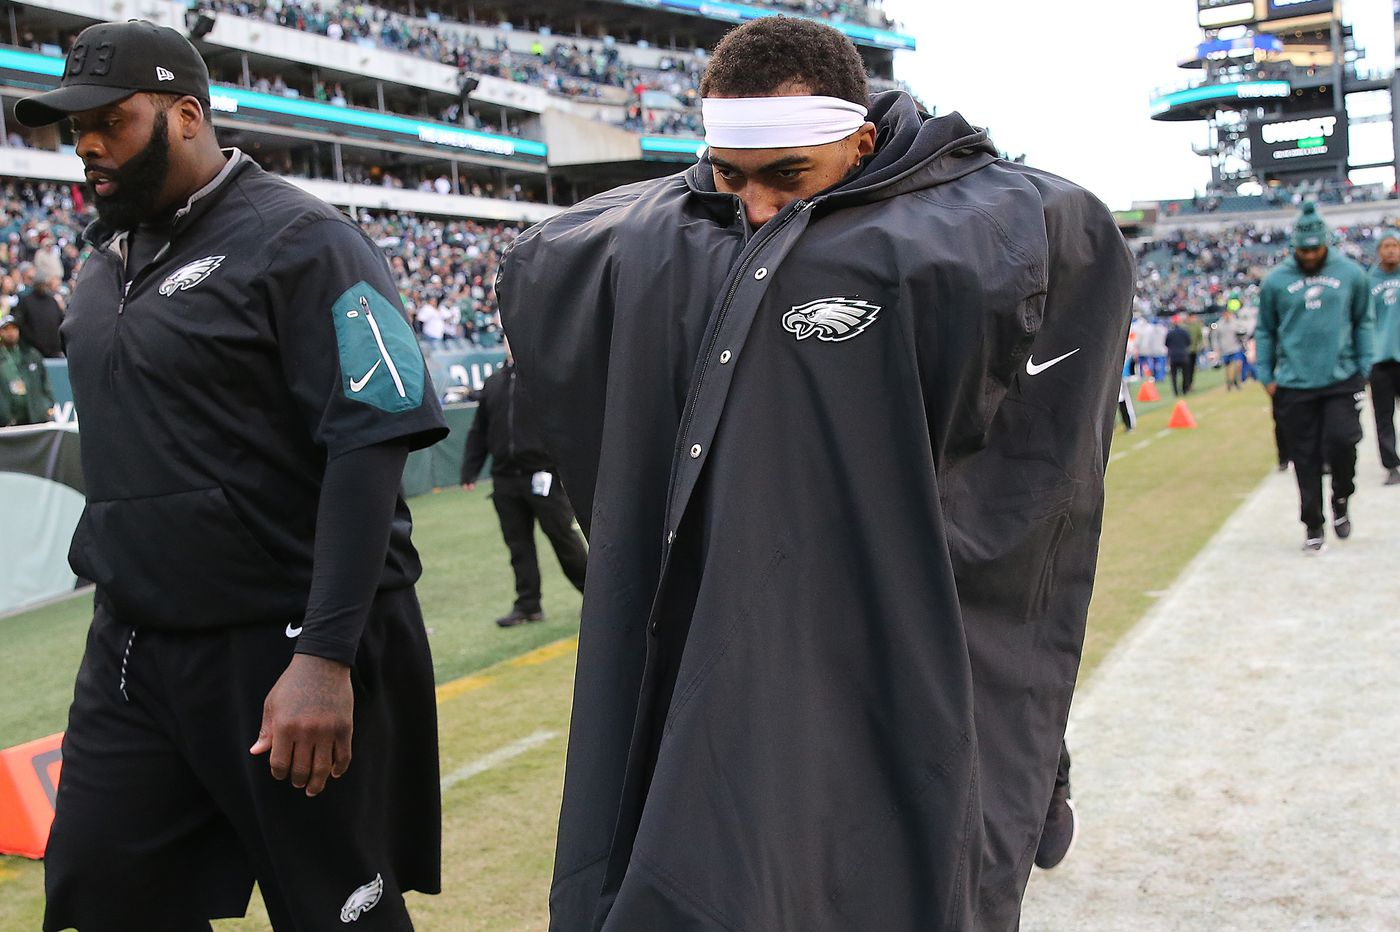 Eagles WR DeSean Jackson to have surgery; his season is likely over